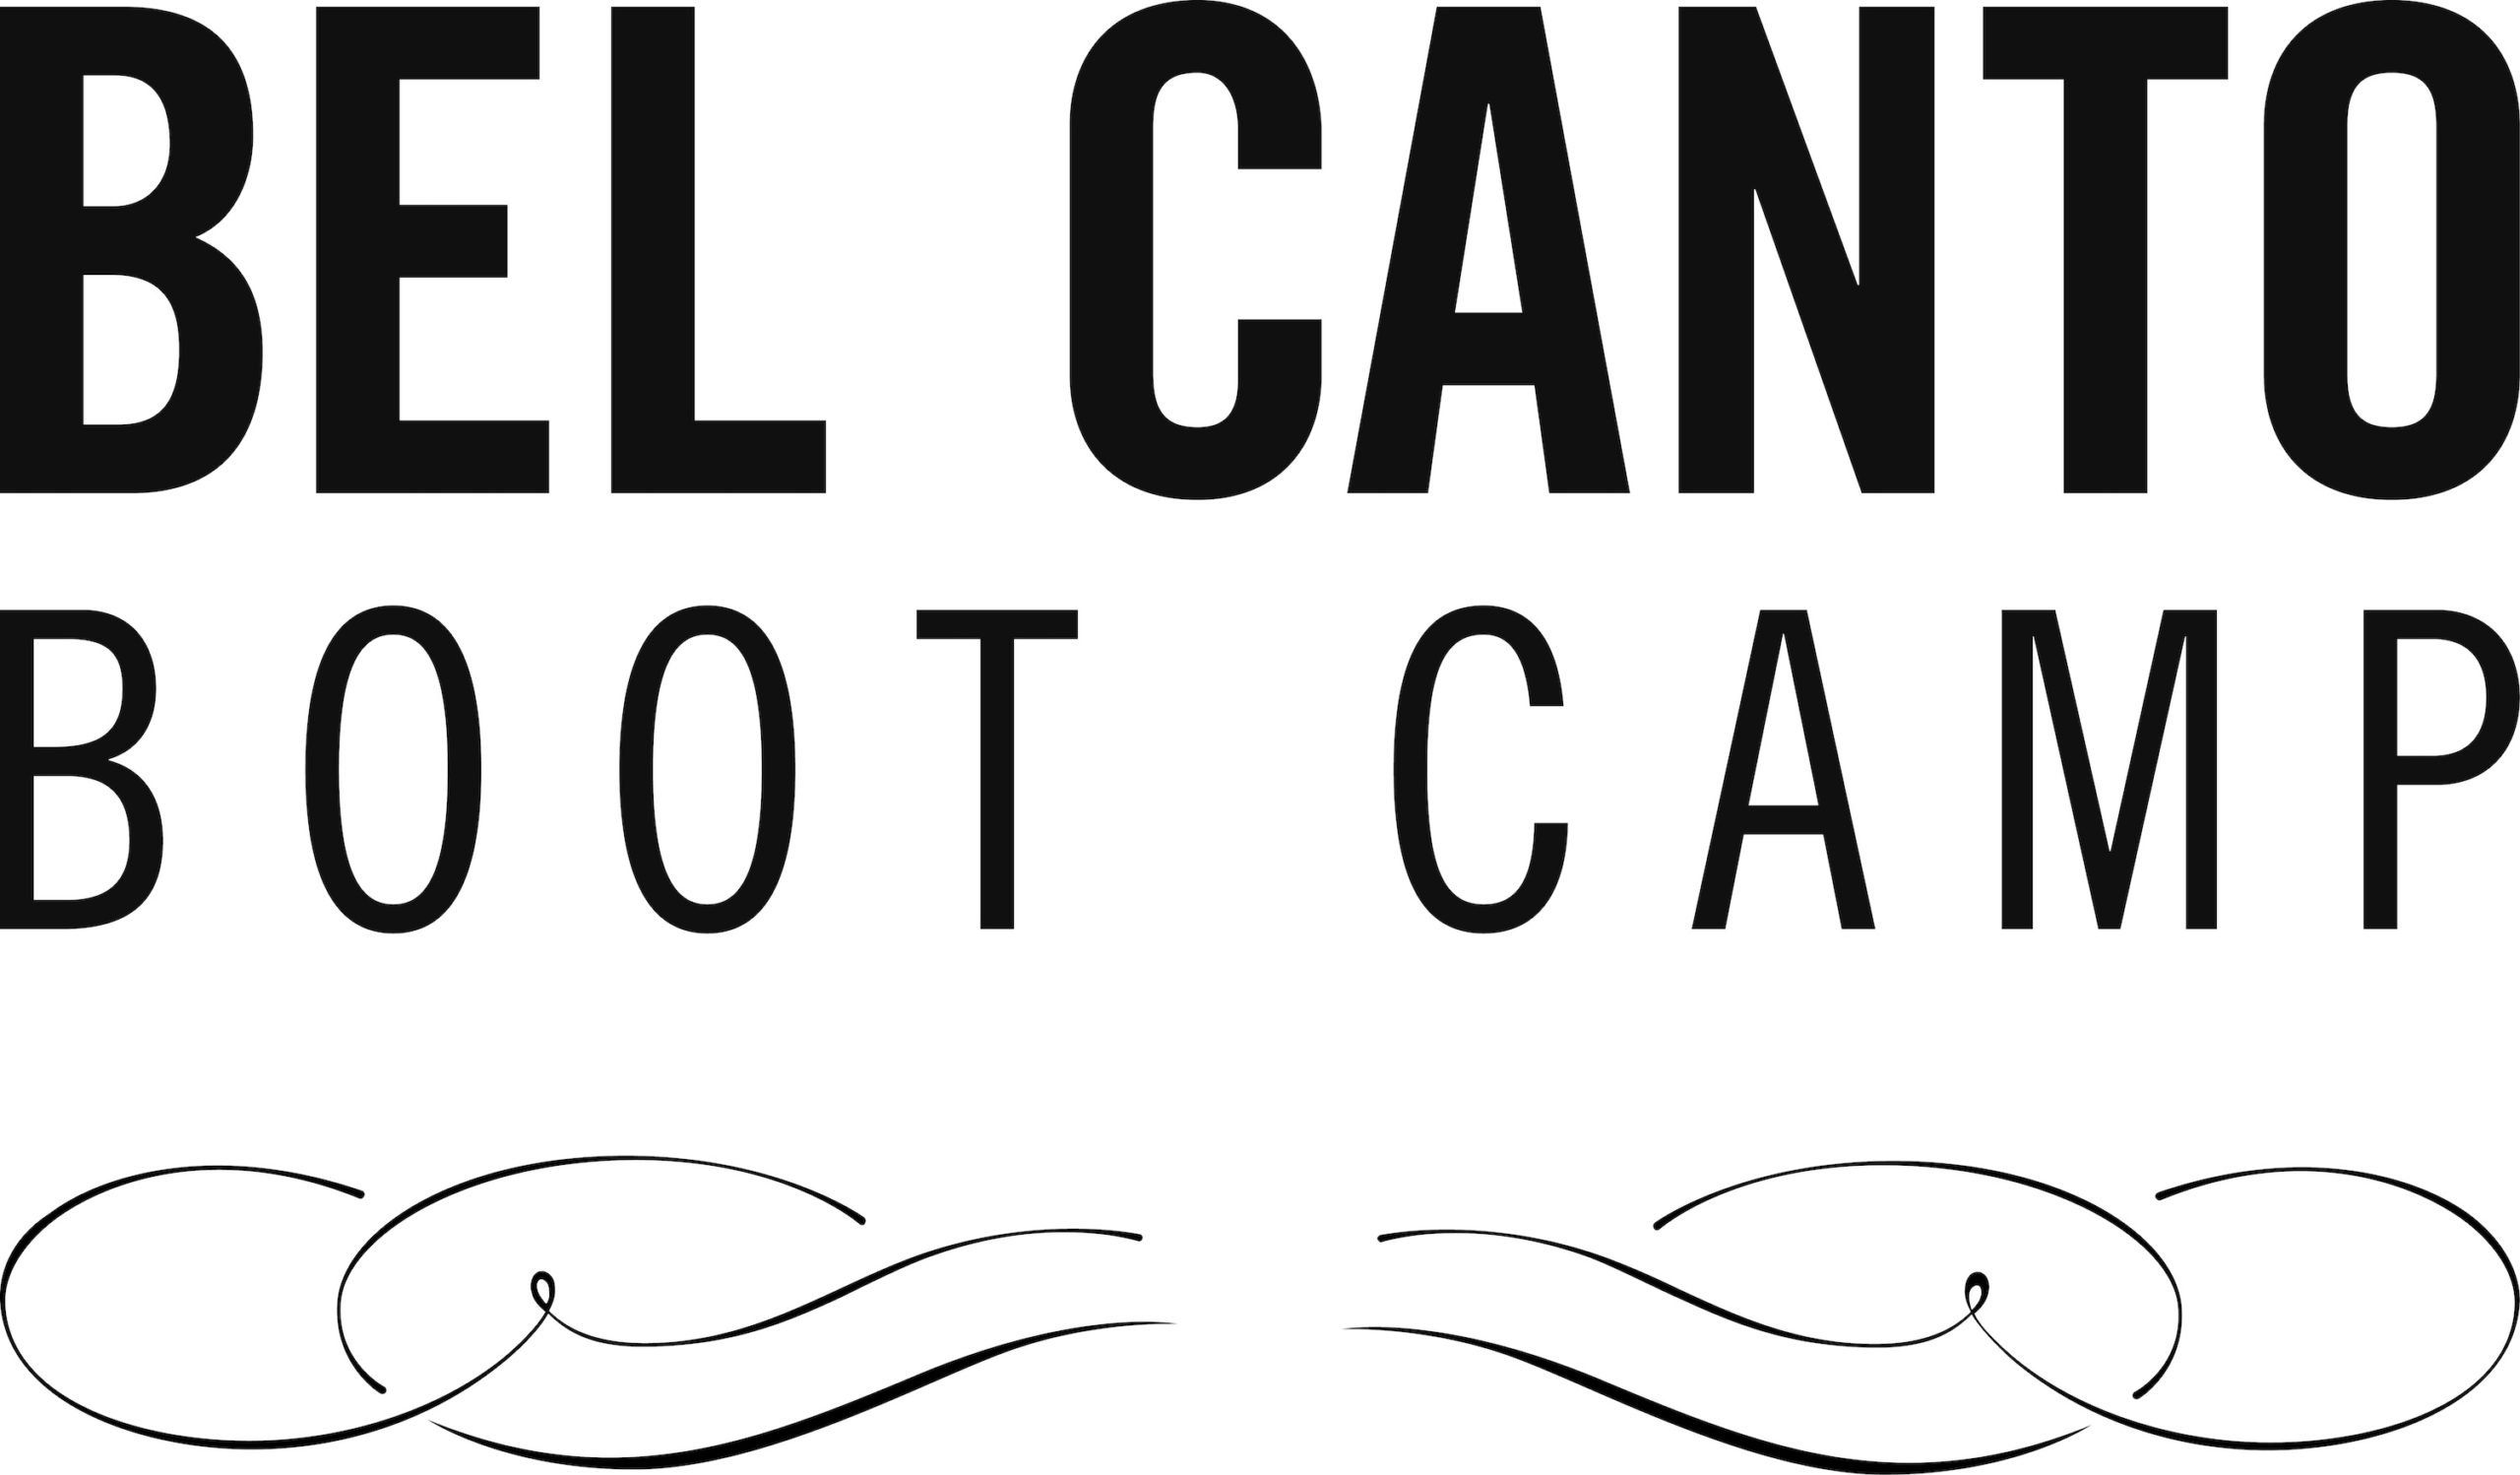 Bel Canto Boot Camp